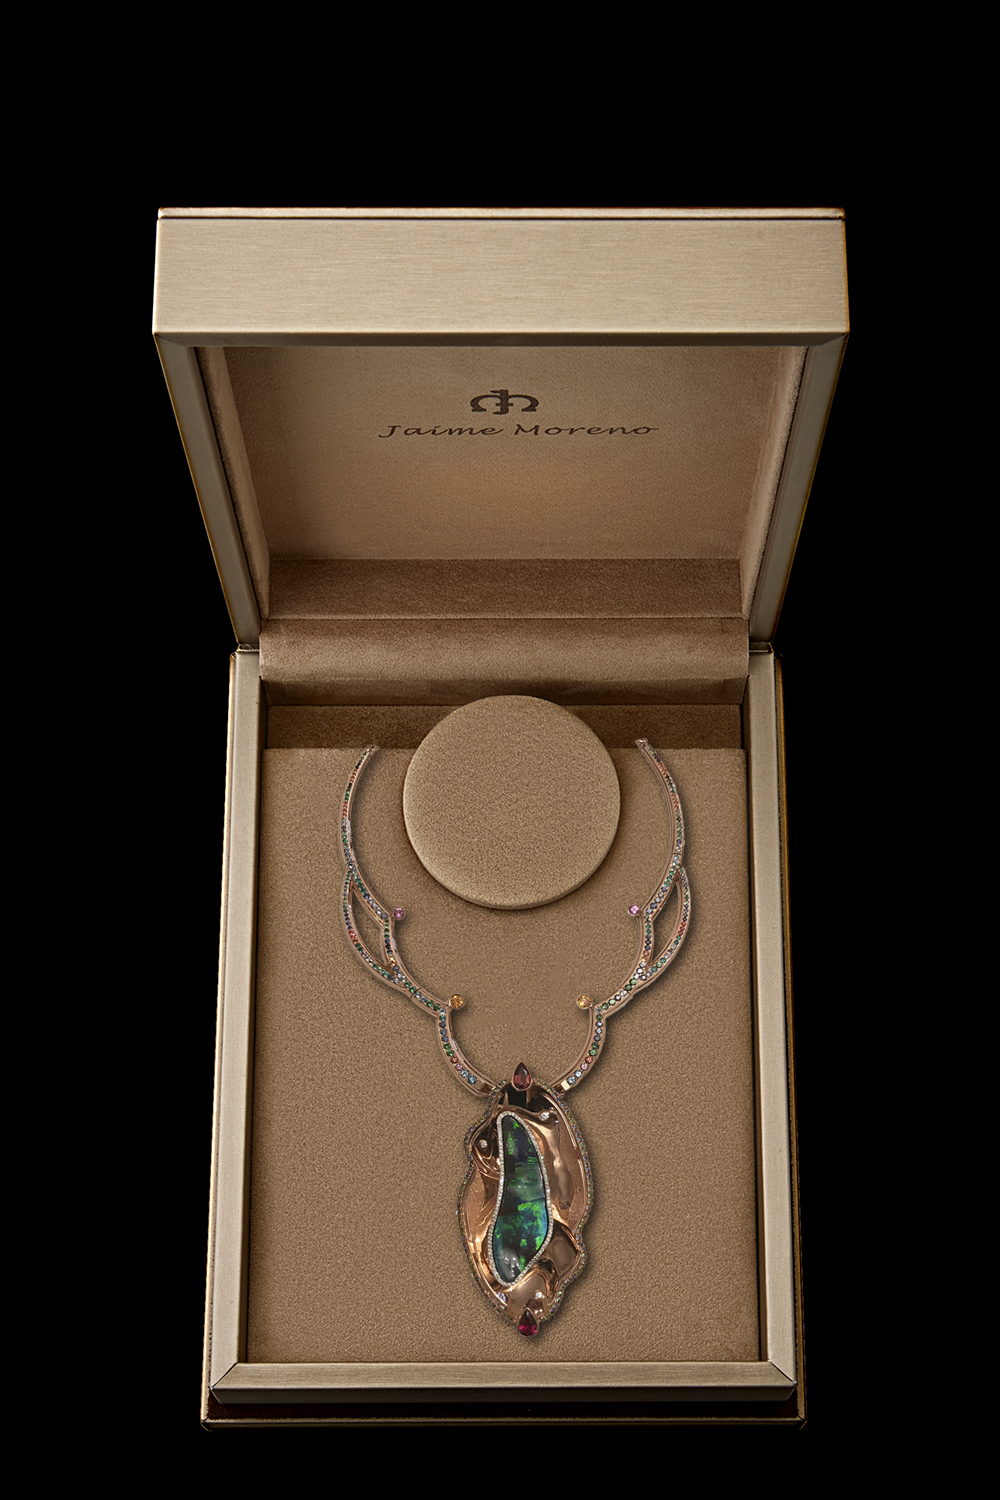 Jaime-Moreno-Art-in-Fine-Jewelry-Tornasol-Packaging